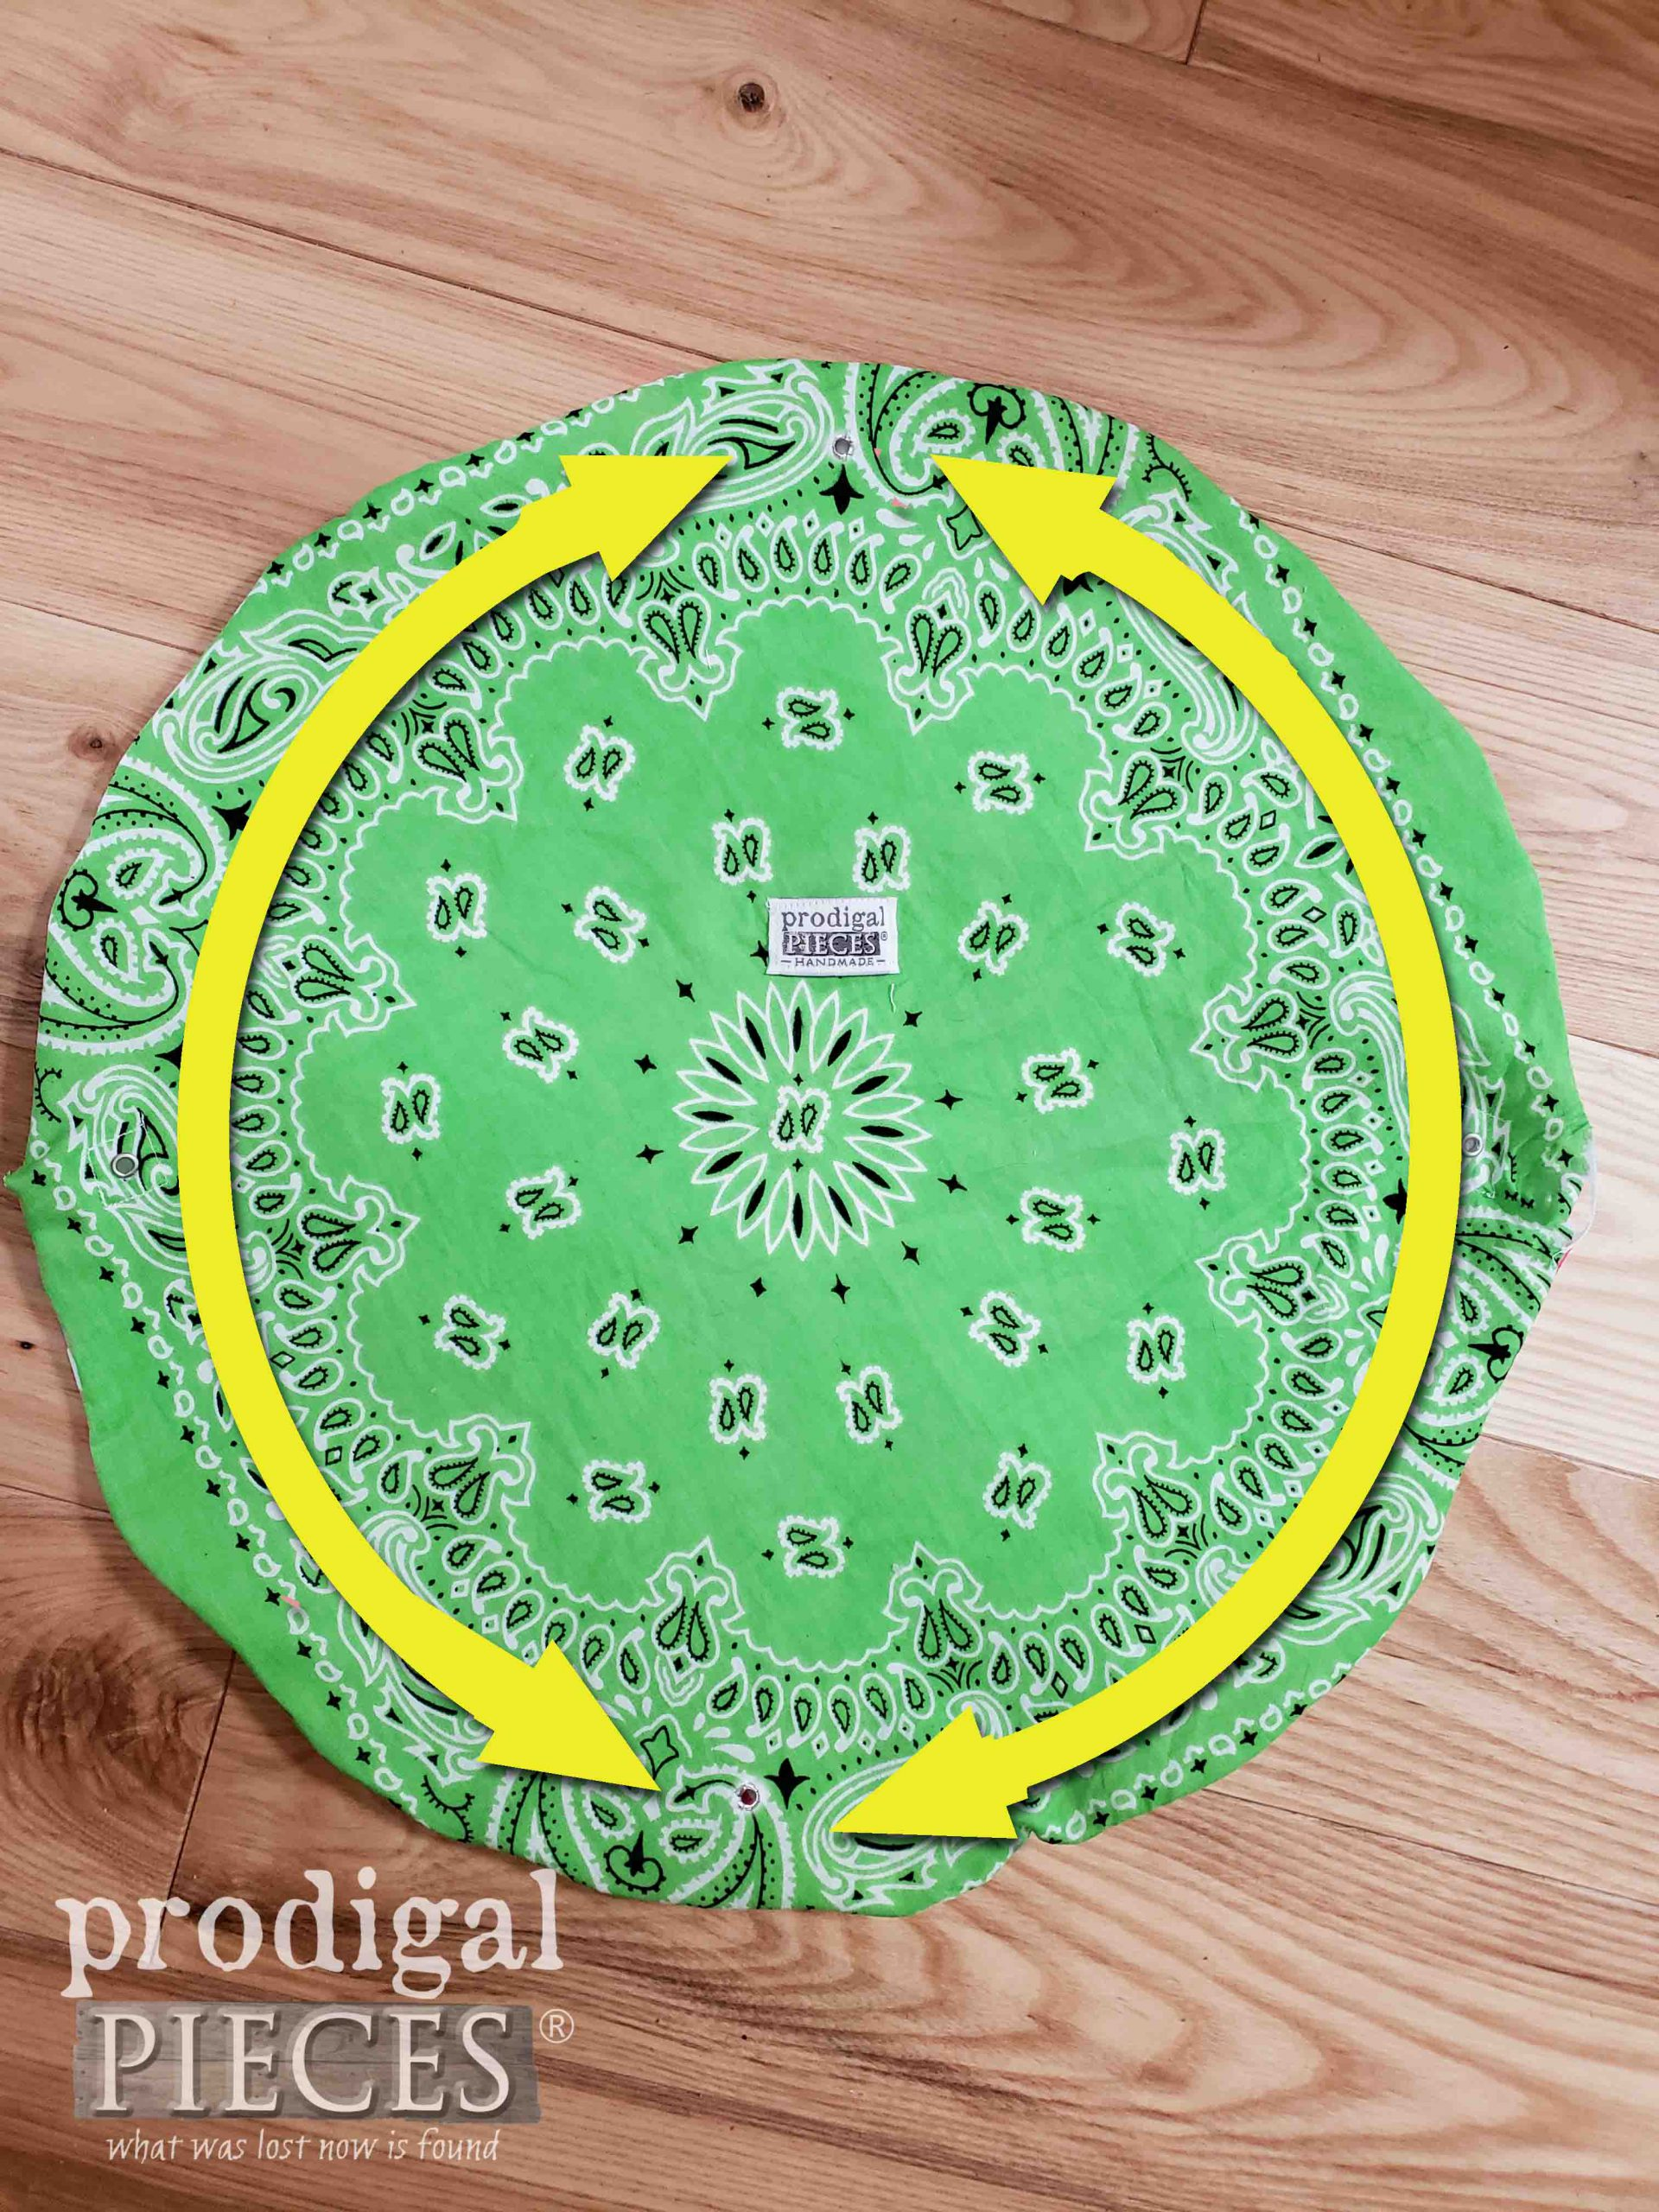 Bandana Drawstring Bag Stitch Pattern for Cording Channel | prodigalpieces.com